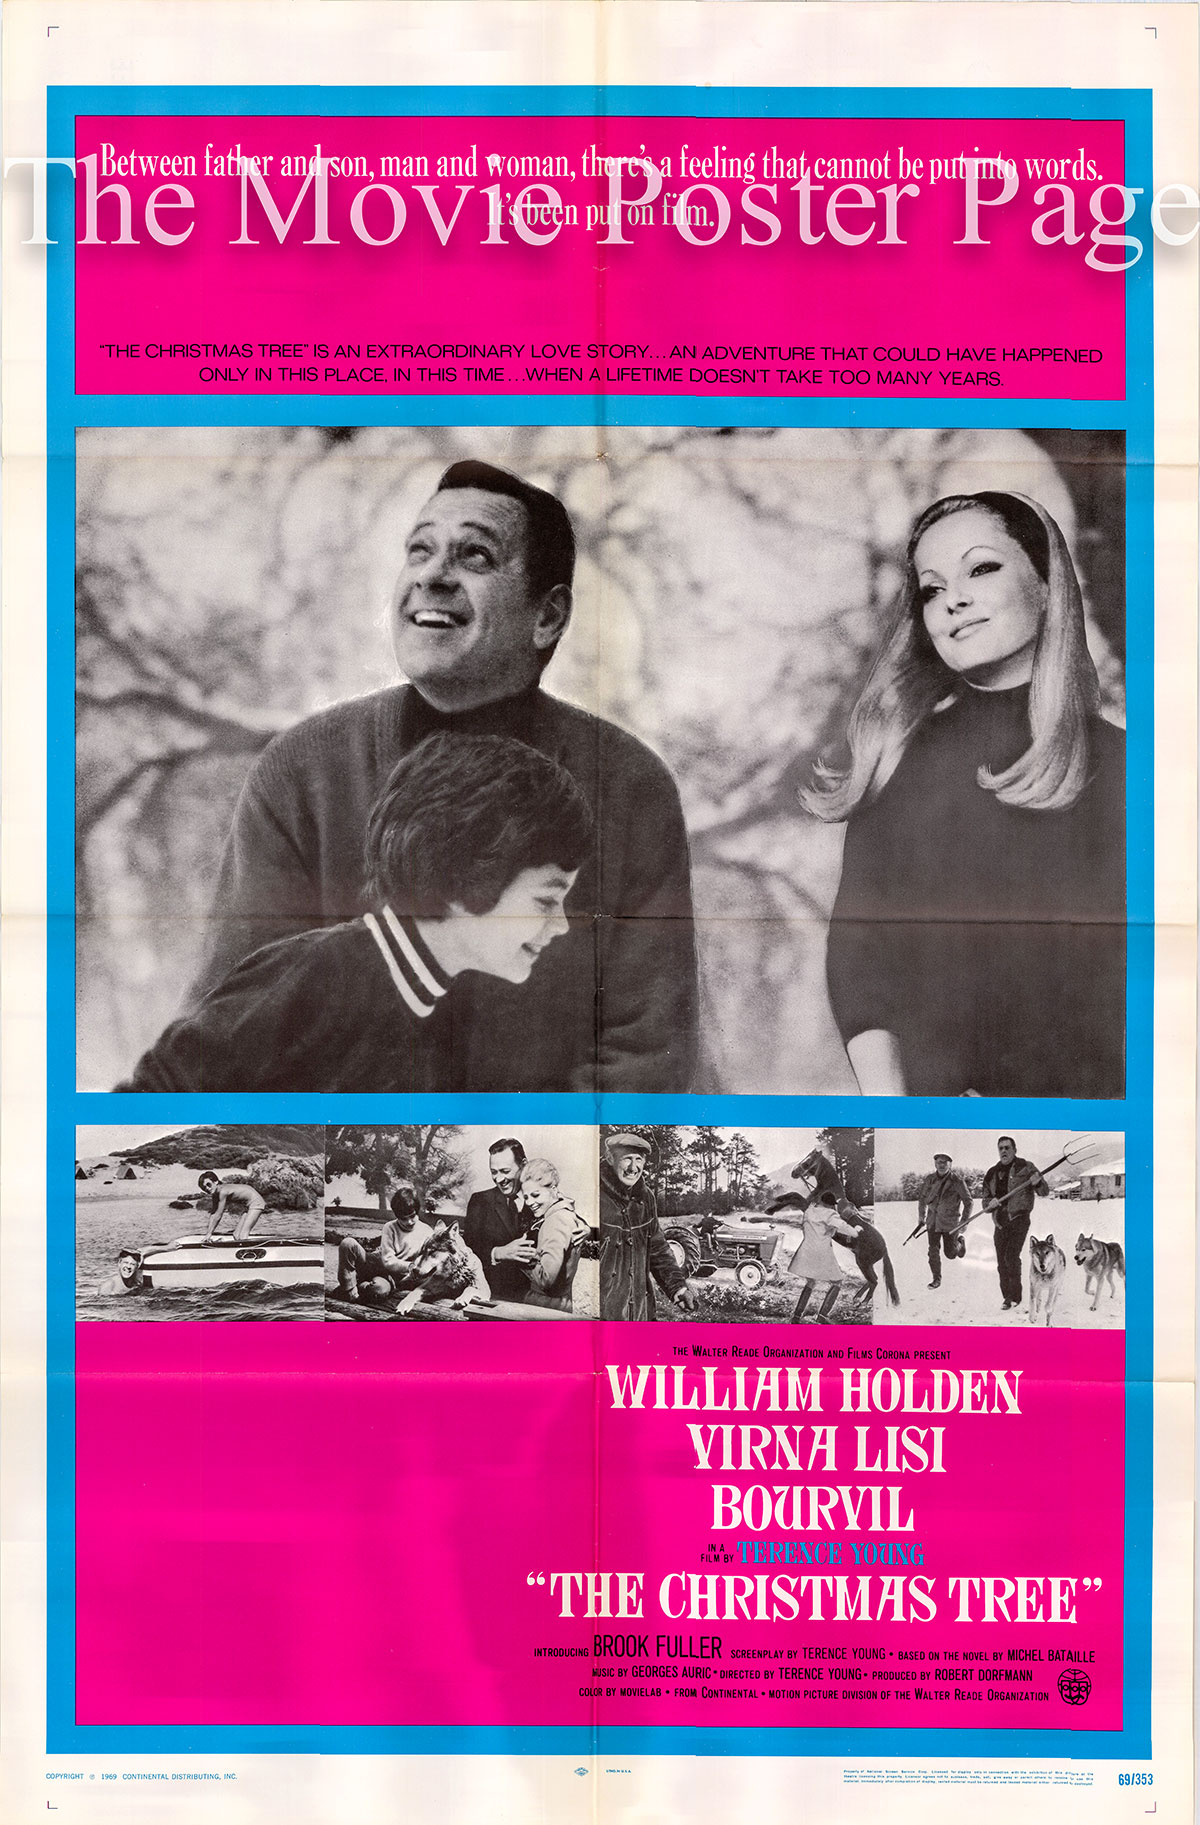 Pictured is a US one-sheet poster for the 1969 Terence Young film The Christmas Tree starring William Holden.